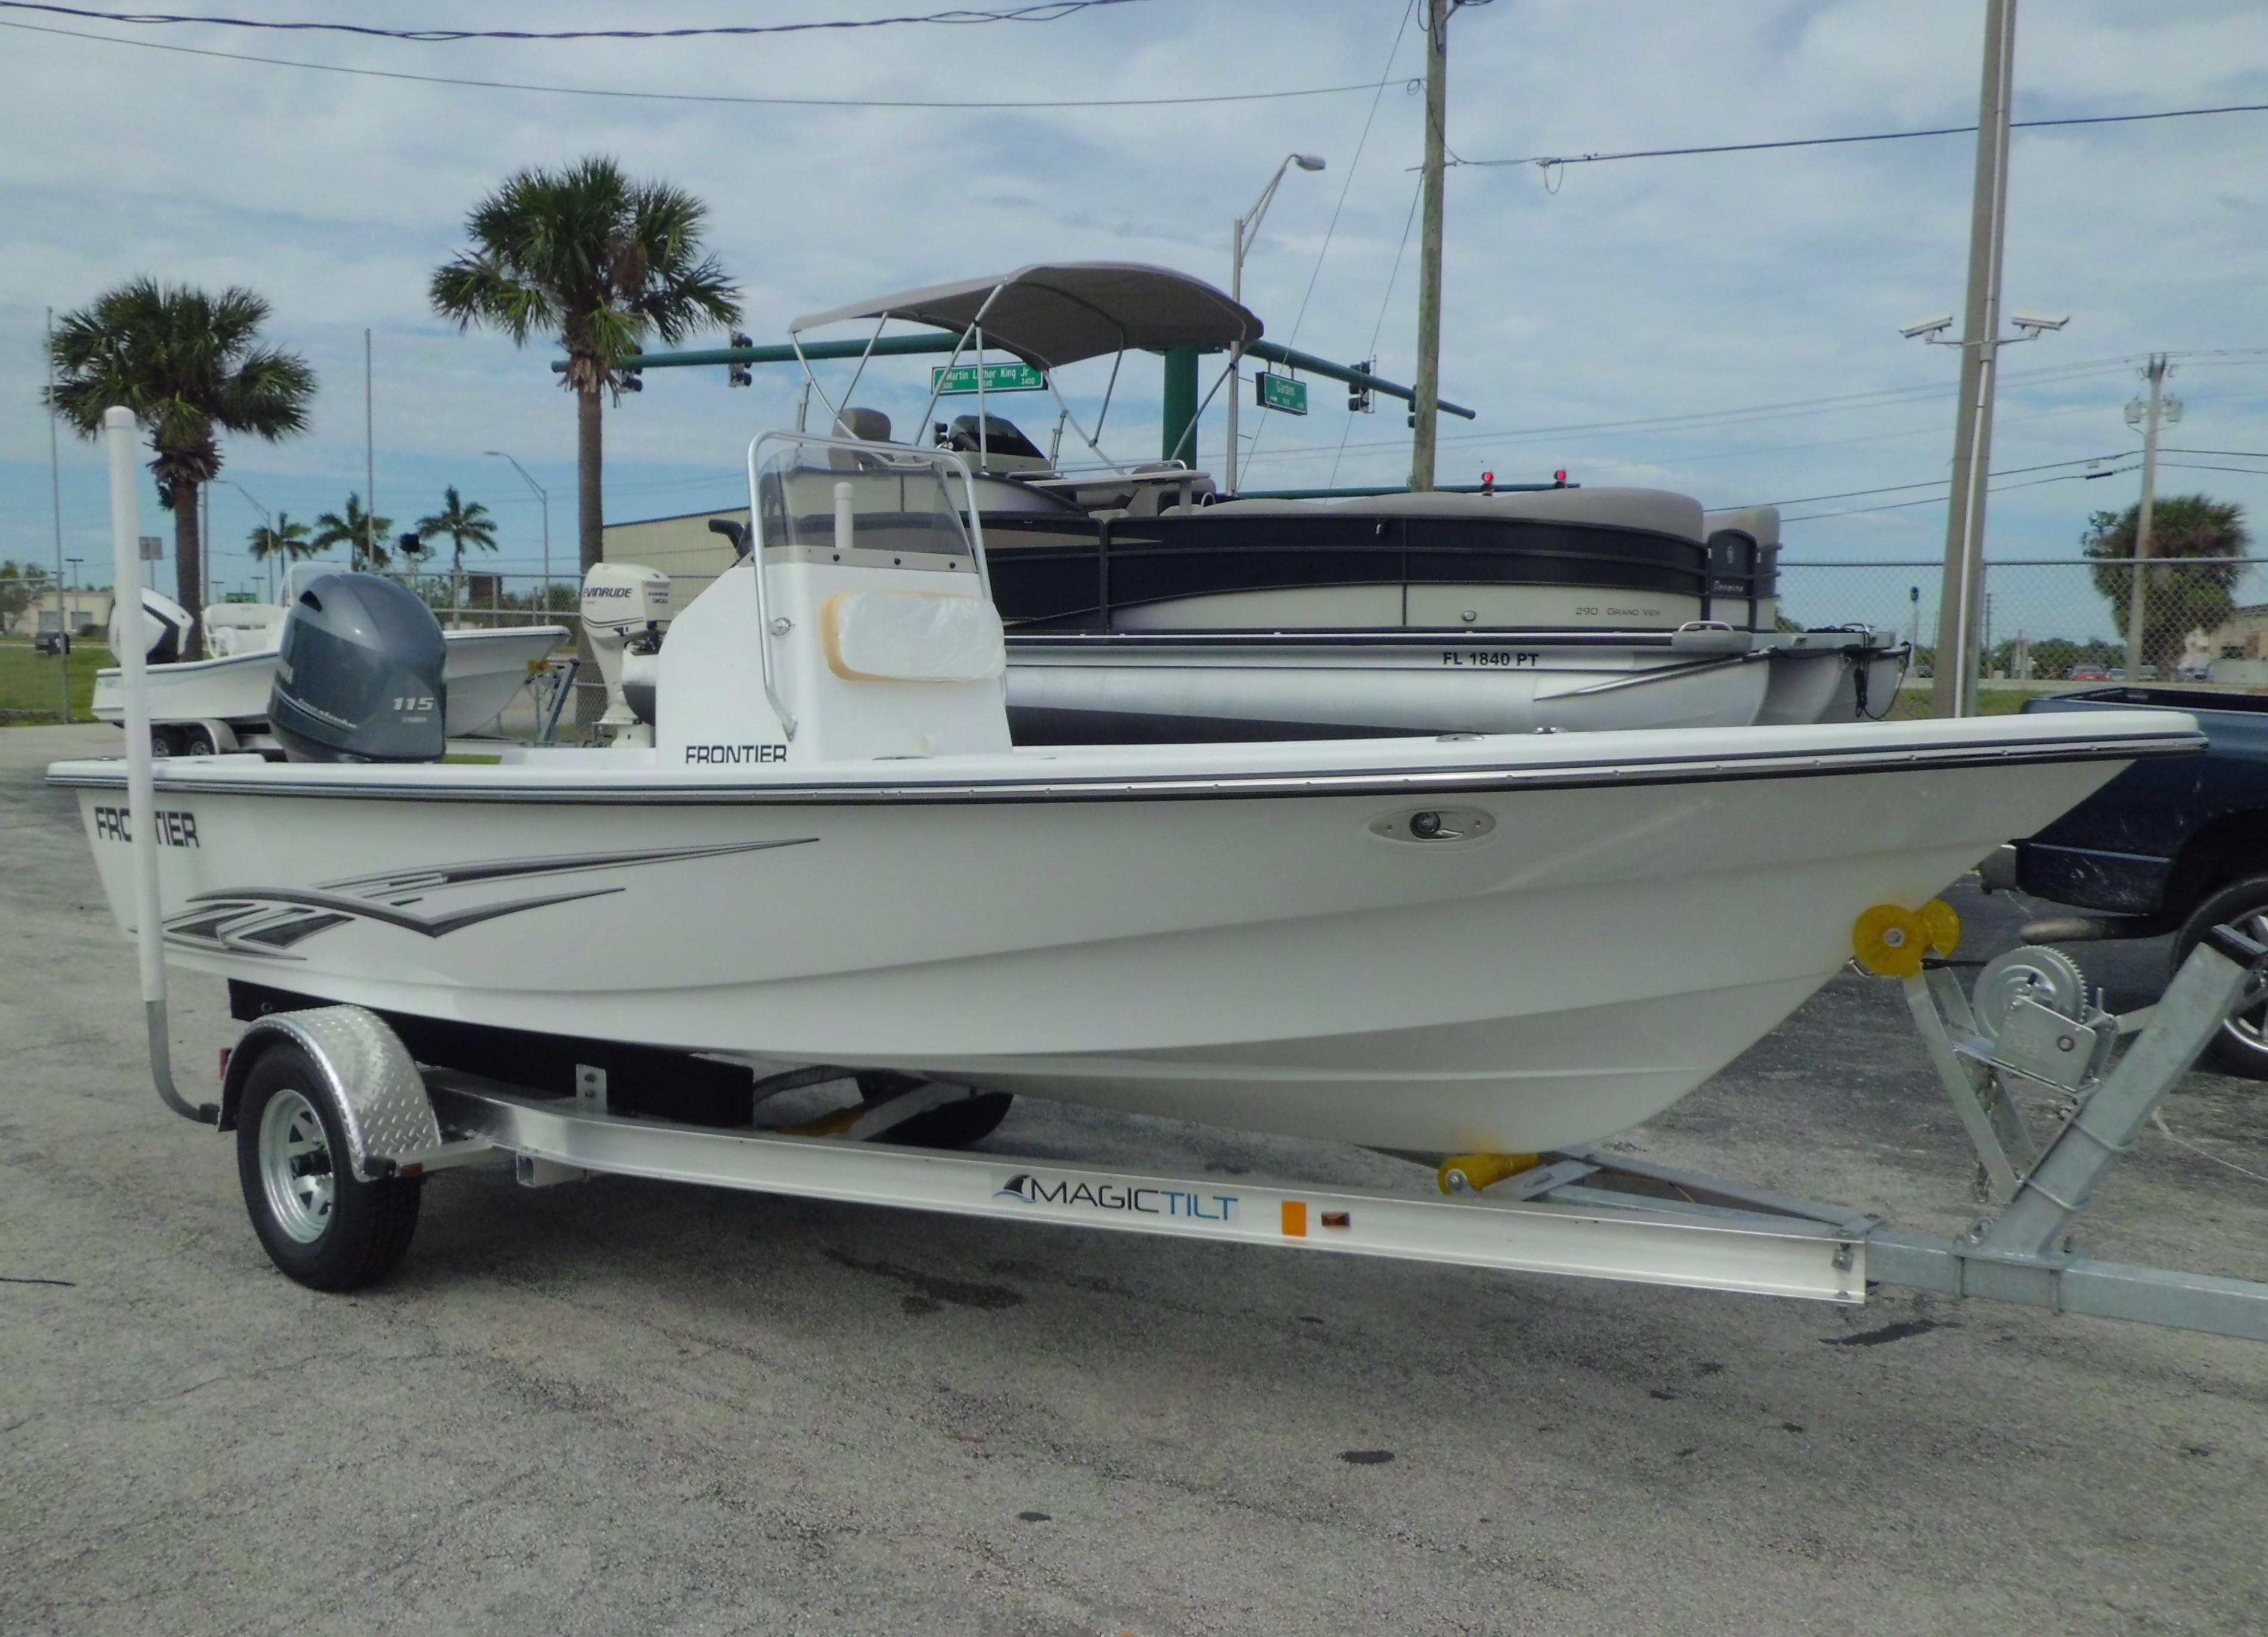 Yamaha outboard engines for sale in florida choice image for Used yamaha outboard motors for sale in florida